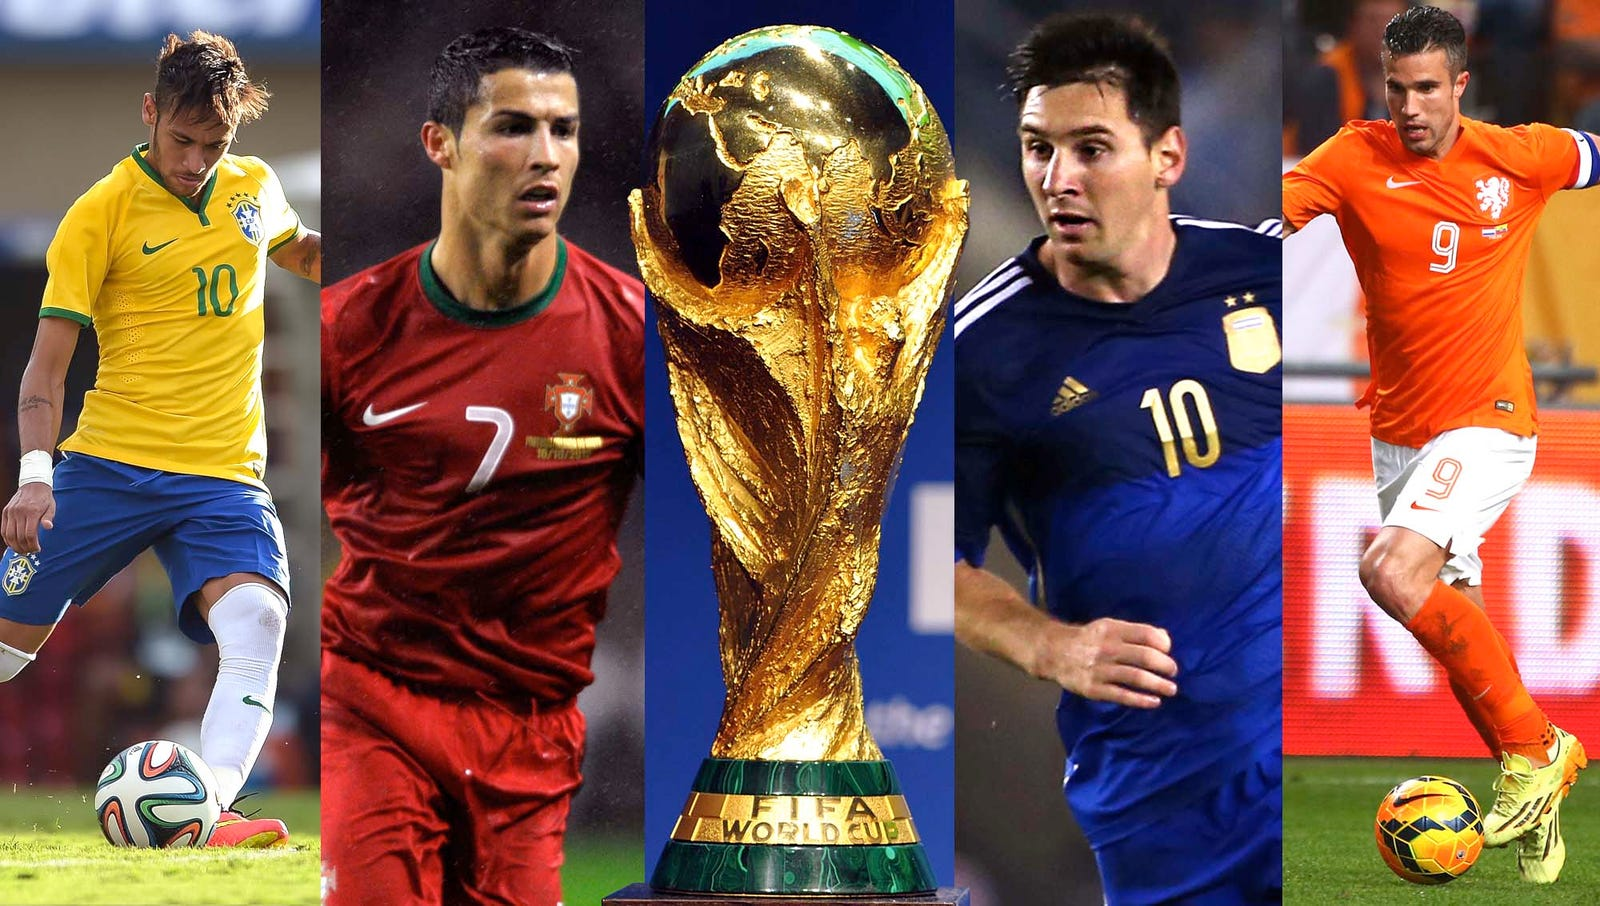 Onion Sports previews the 10 most captivating players to watch heading into the 2014 World Cup in Brazil.